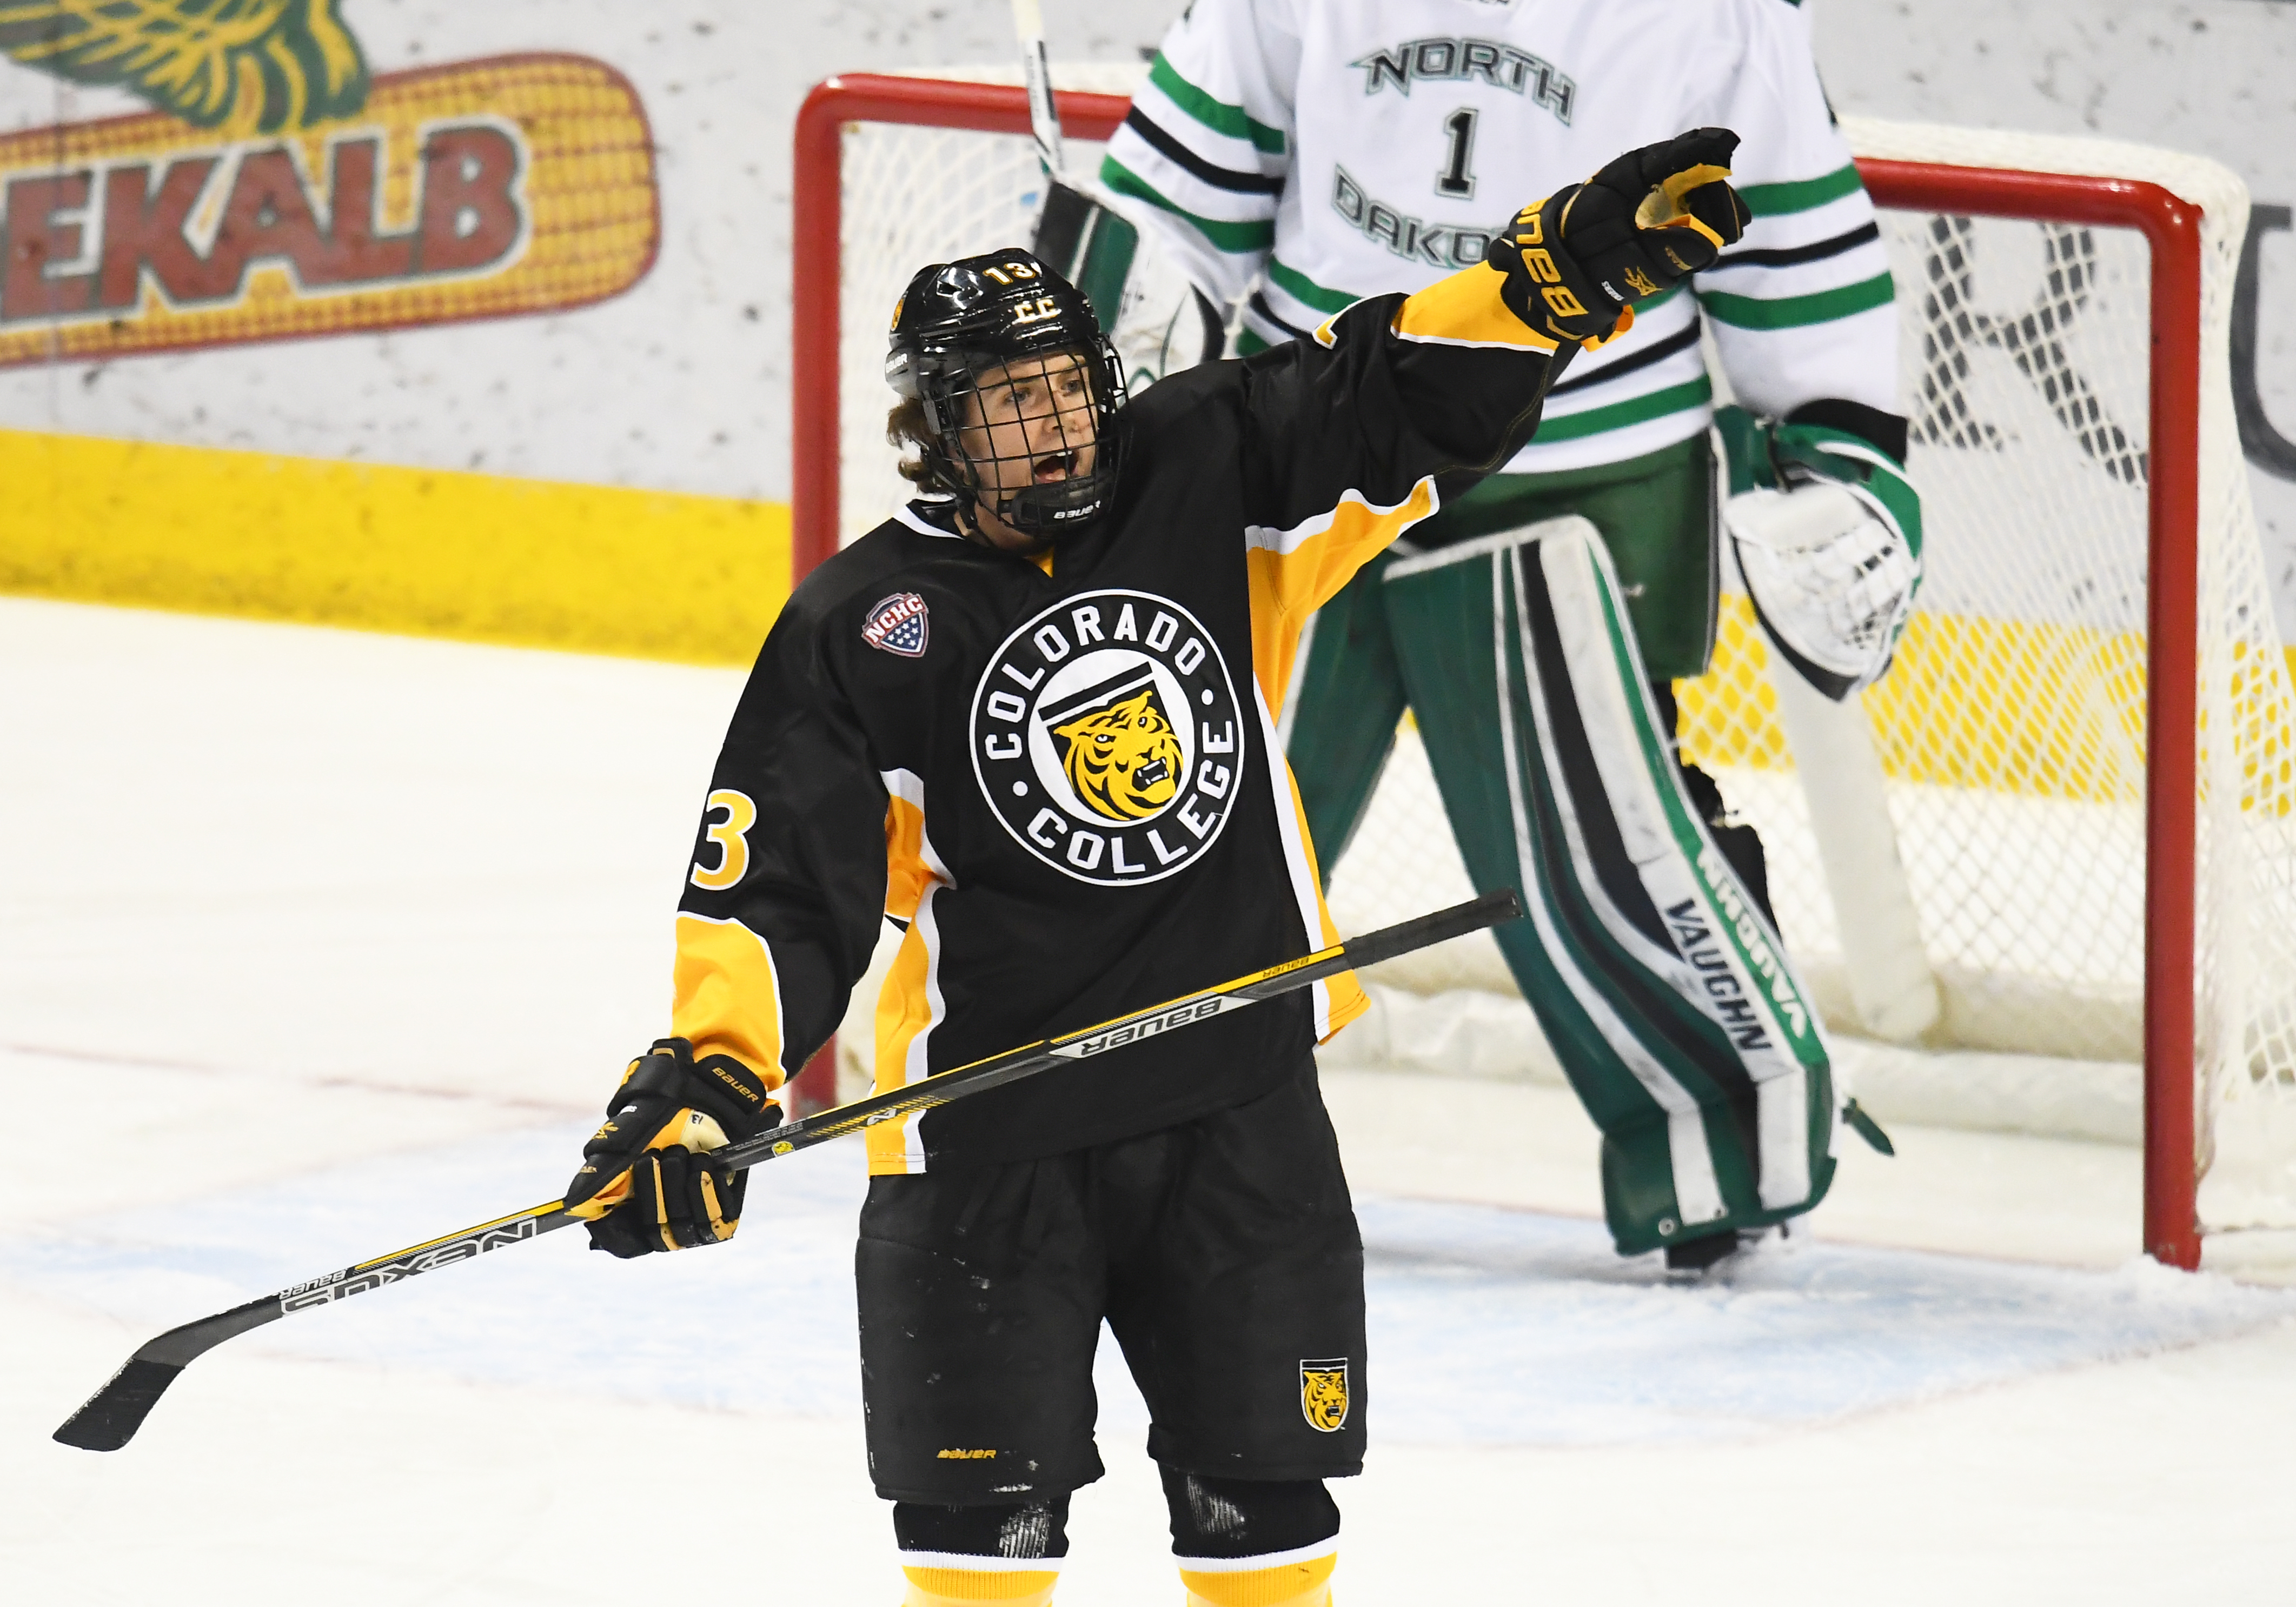 GRAND FORKS, ND - FEBRUARY 10: Colorado College Forward Nick Halloran (13) pleads his case to an official during a college hockey game between the University of North Dakota and Colorado College on February 10, 2018 at Ralph Engelstad Arena in Grand Forks, ND. North Dakota defeated Colorado College 5-1.